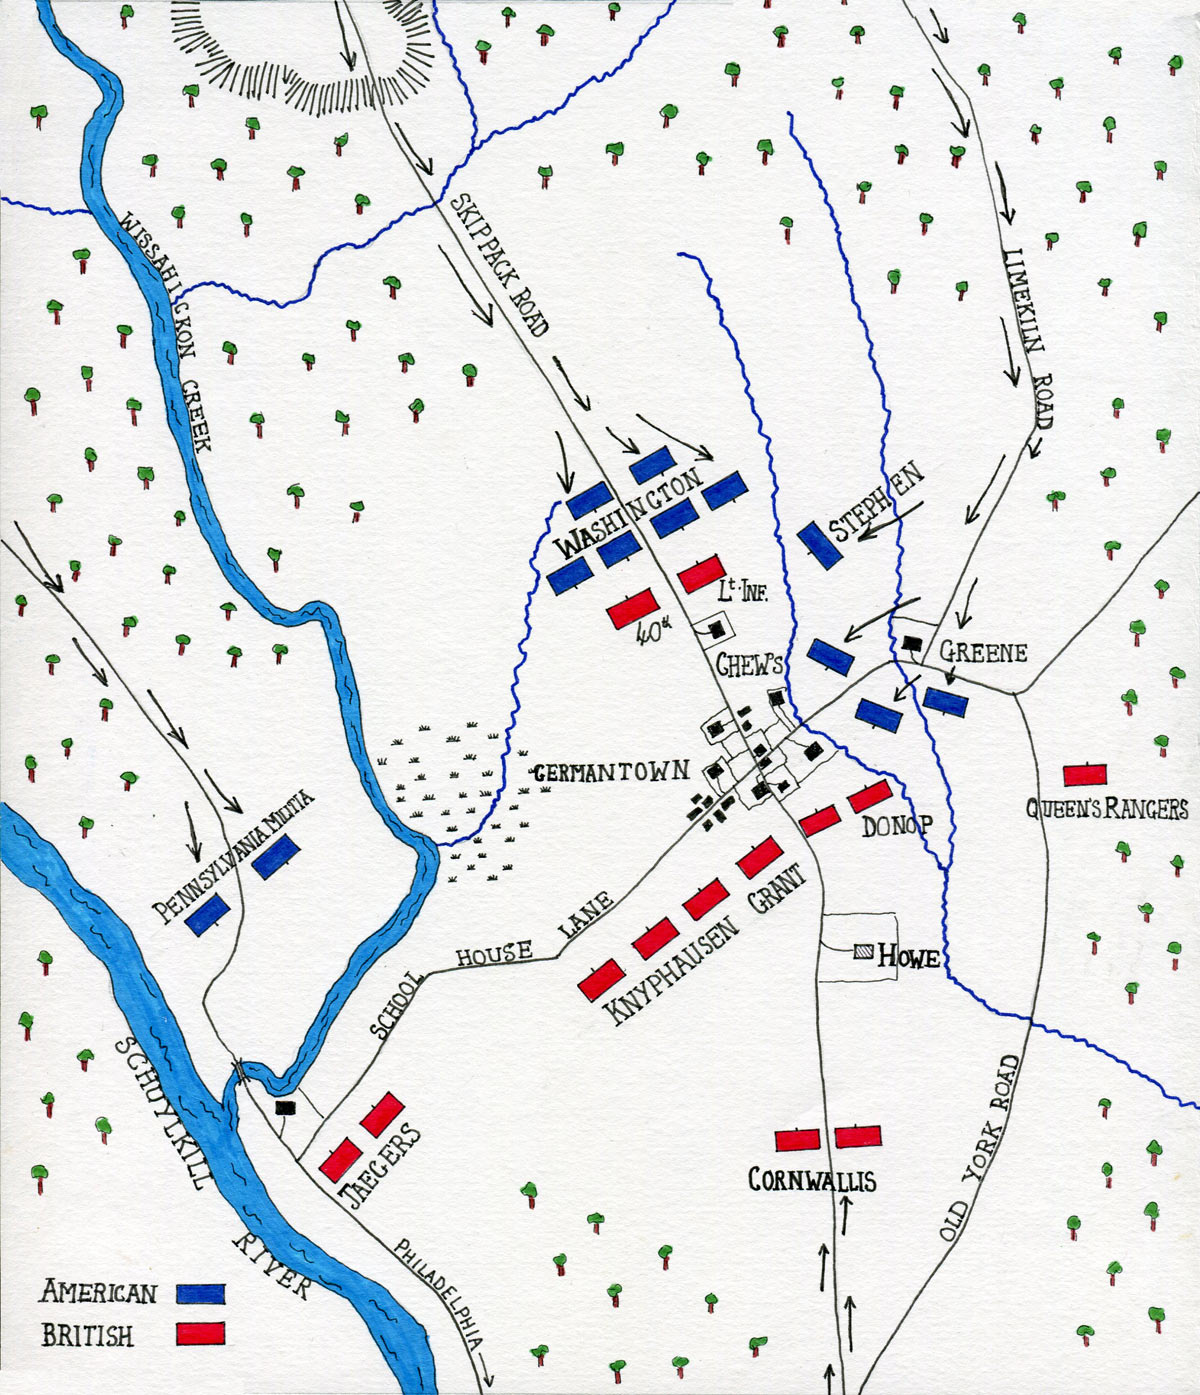 Map of the Battle of Germantown on 4th October 1777 in the American Revolutionary War: map by John Fawkes